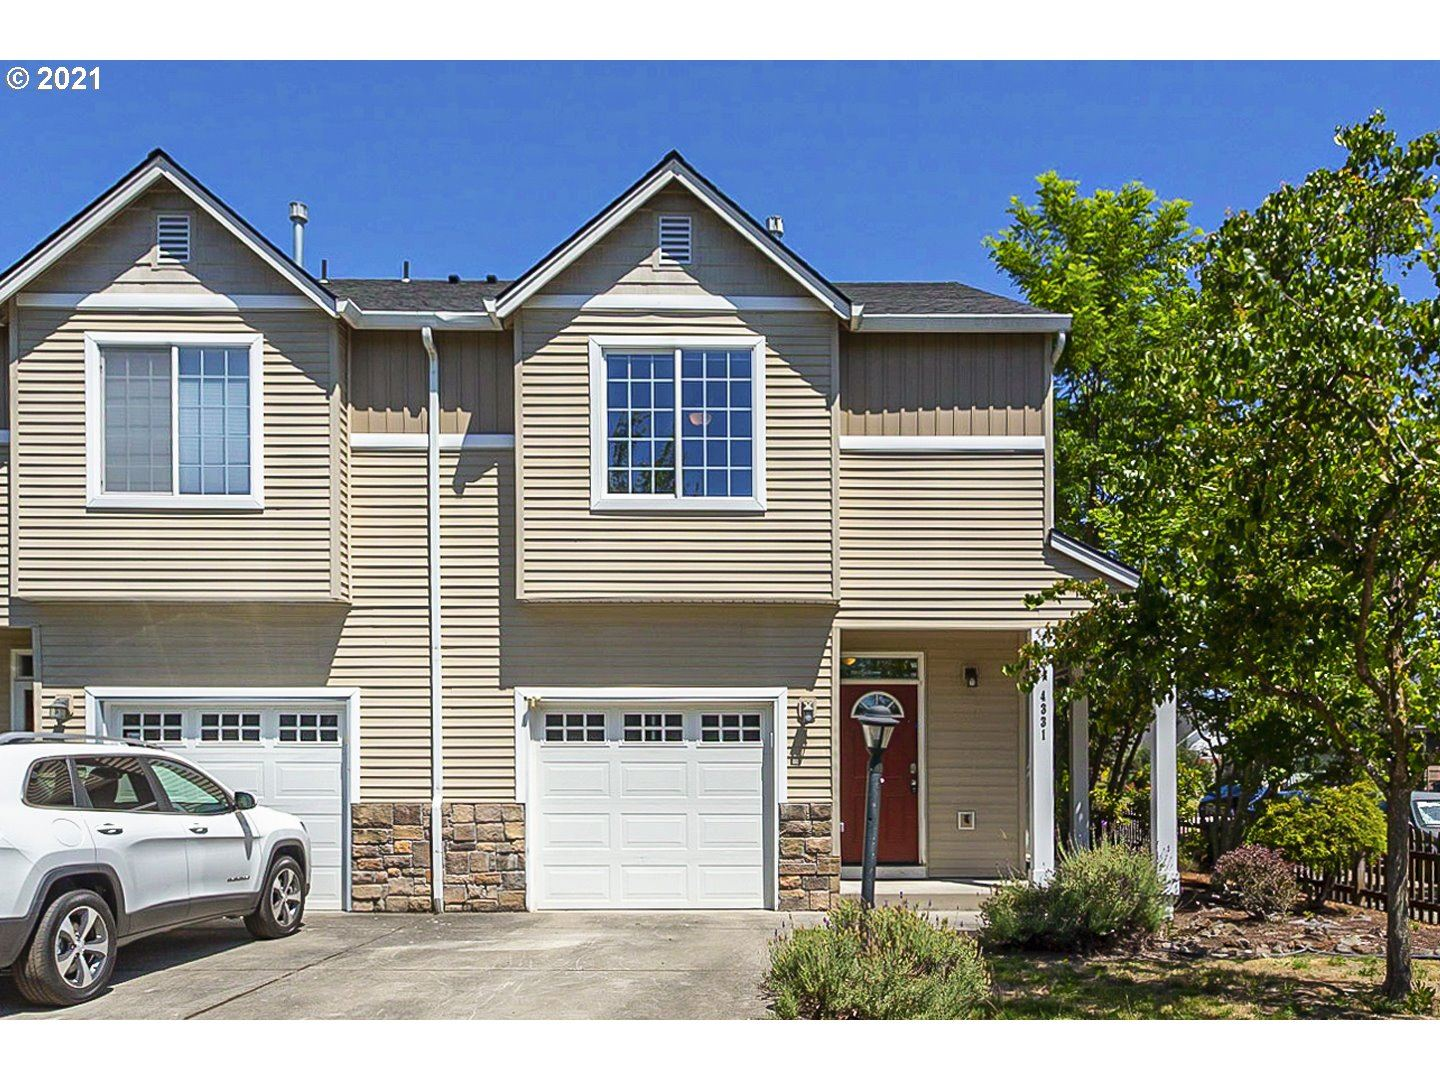 4331 SE 79TH AVE, Portland, OR 97206 - MLS#: 21595295